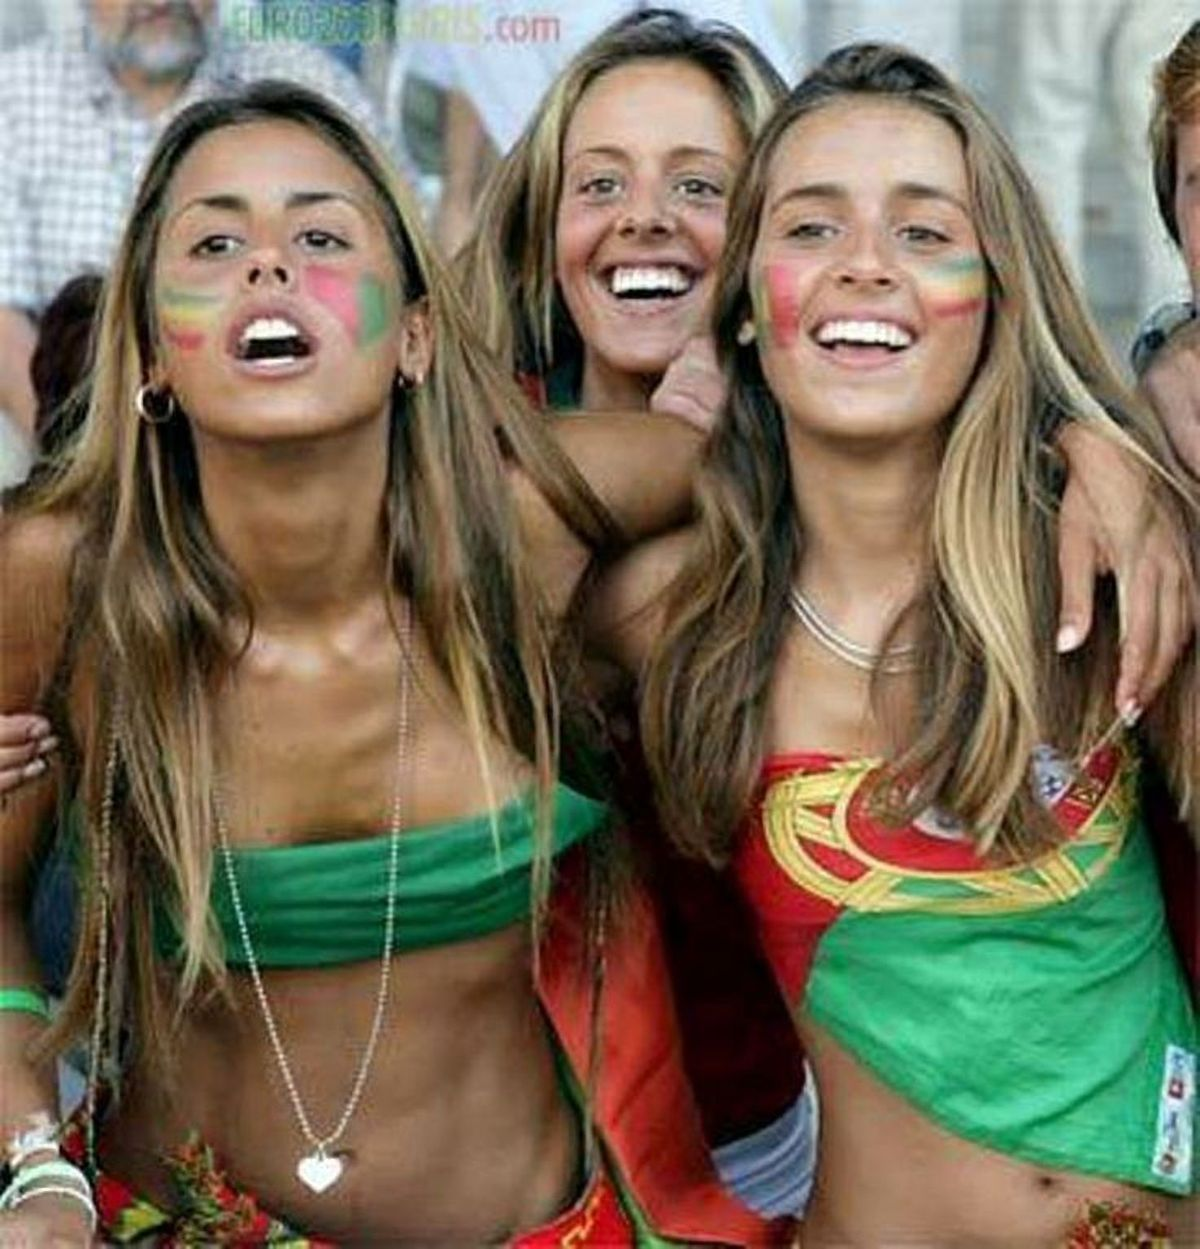 12 Struggles Only Portuguese Girls Can Relate To